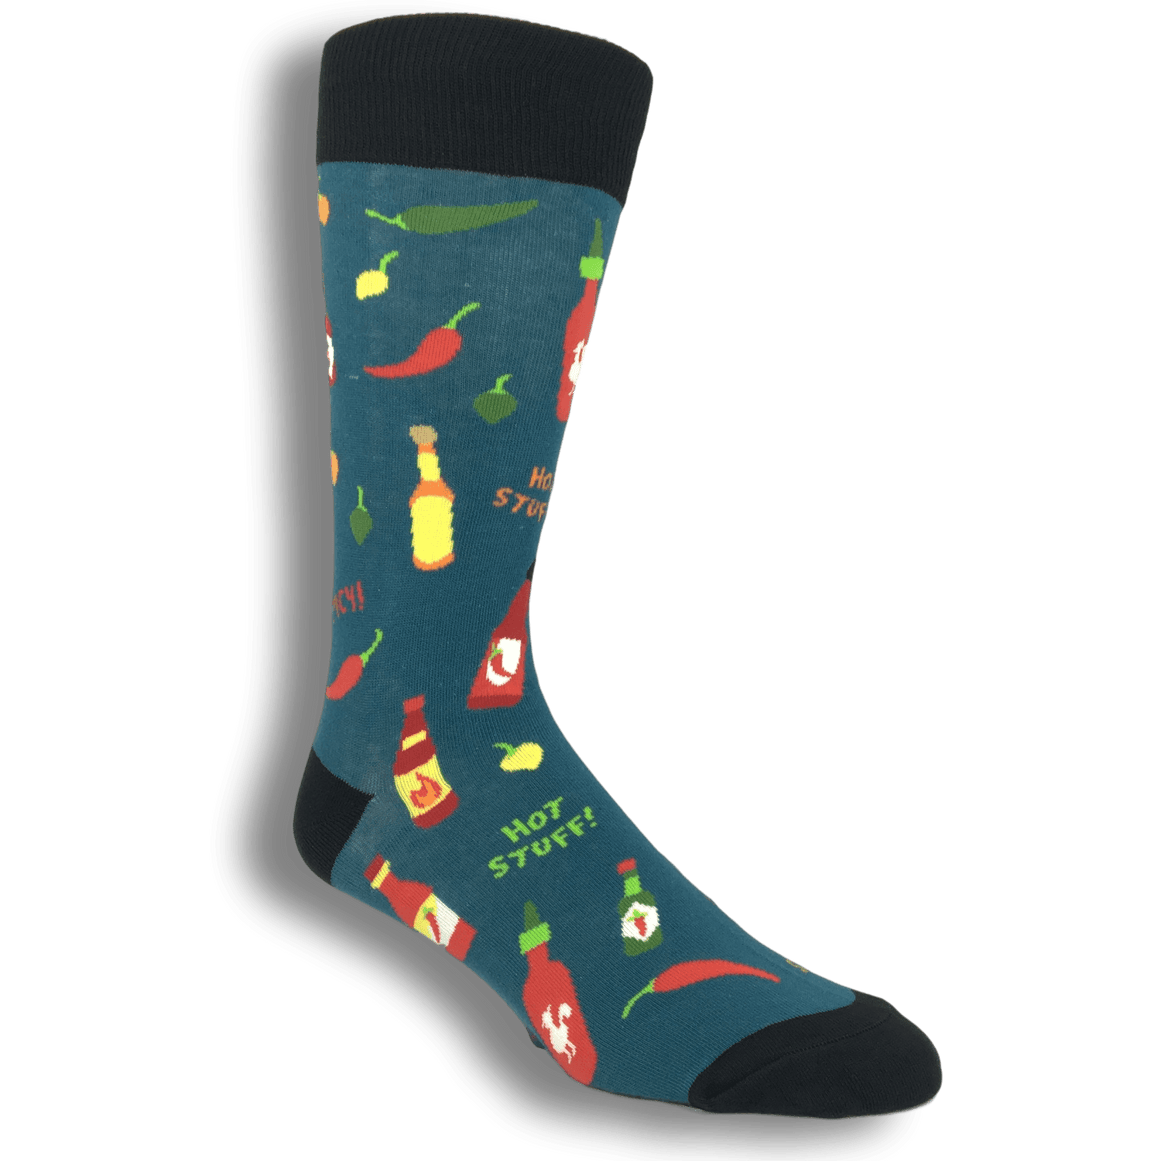 Hot Stuff Peppers and Hot Sauce Socks by Foot Traffic - The Sock Spot